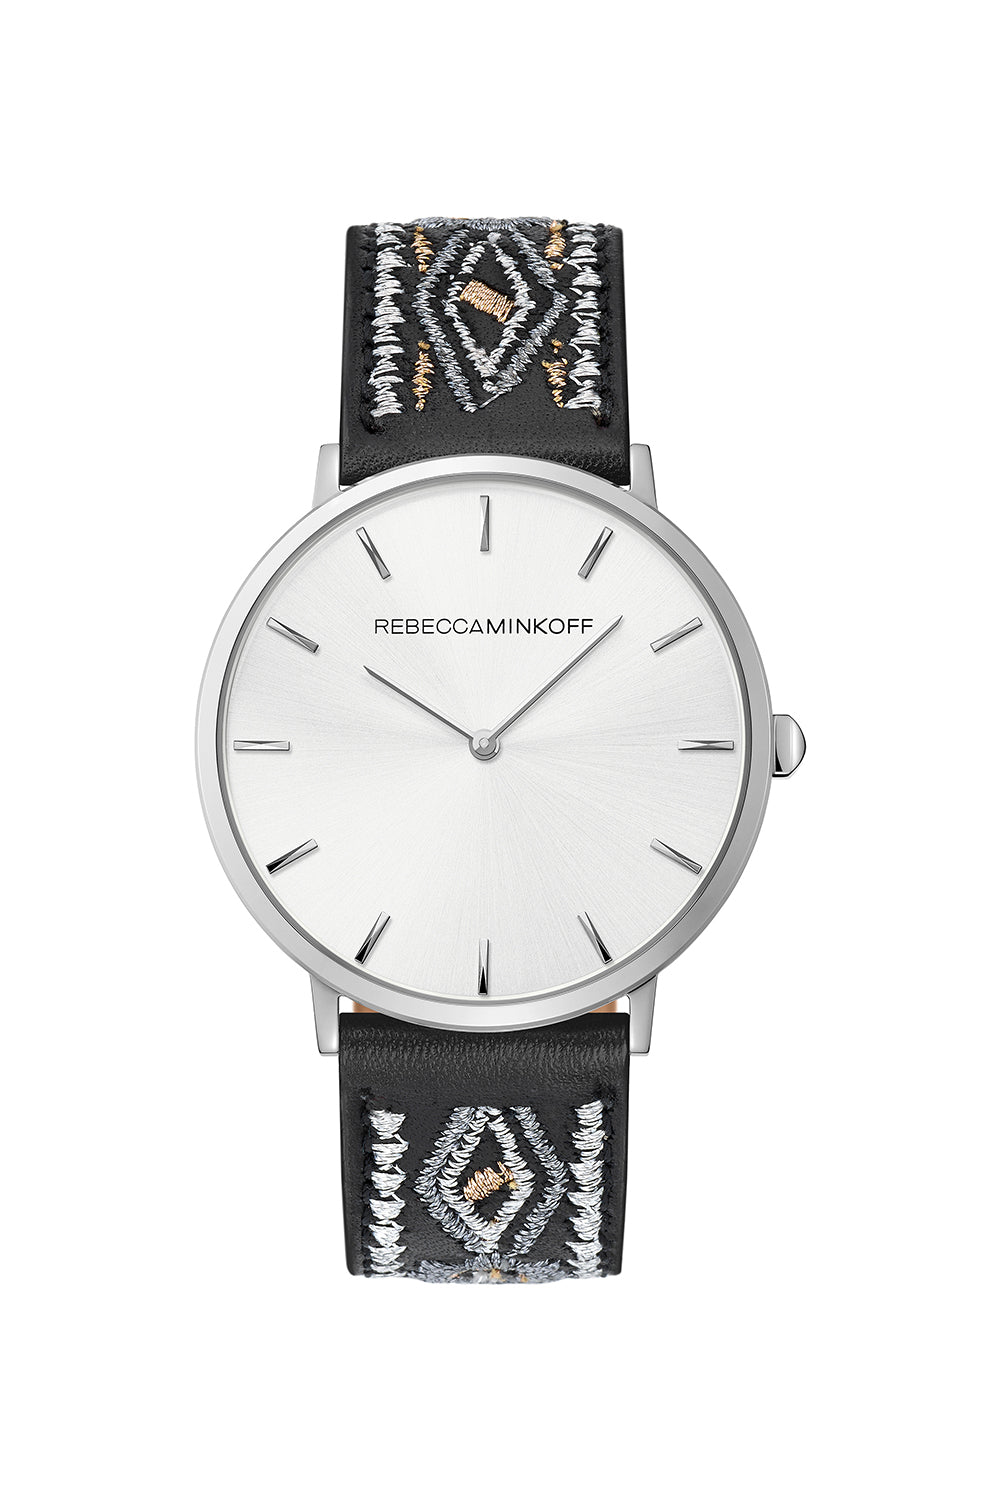 Rebecca-Minkoff Major Silver Tone Stitched Black Leather Watch, 40MM